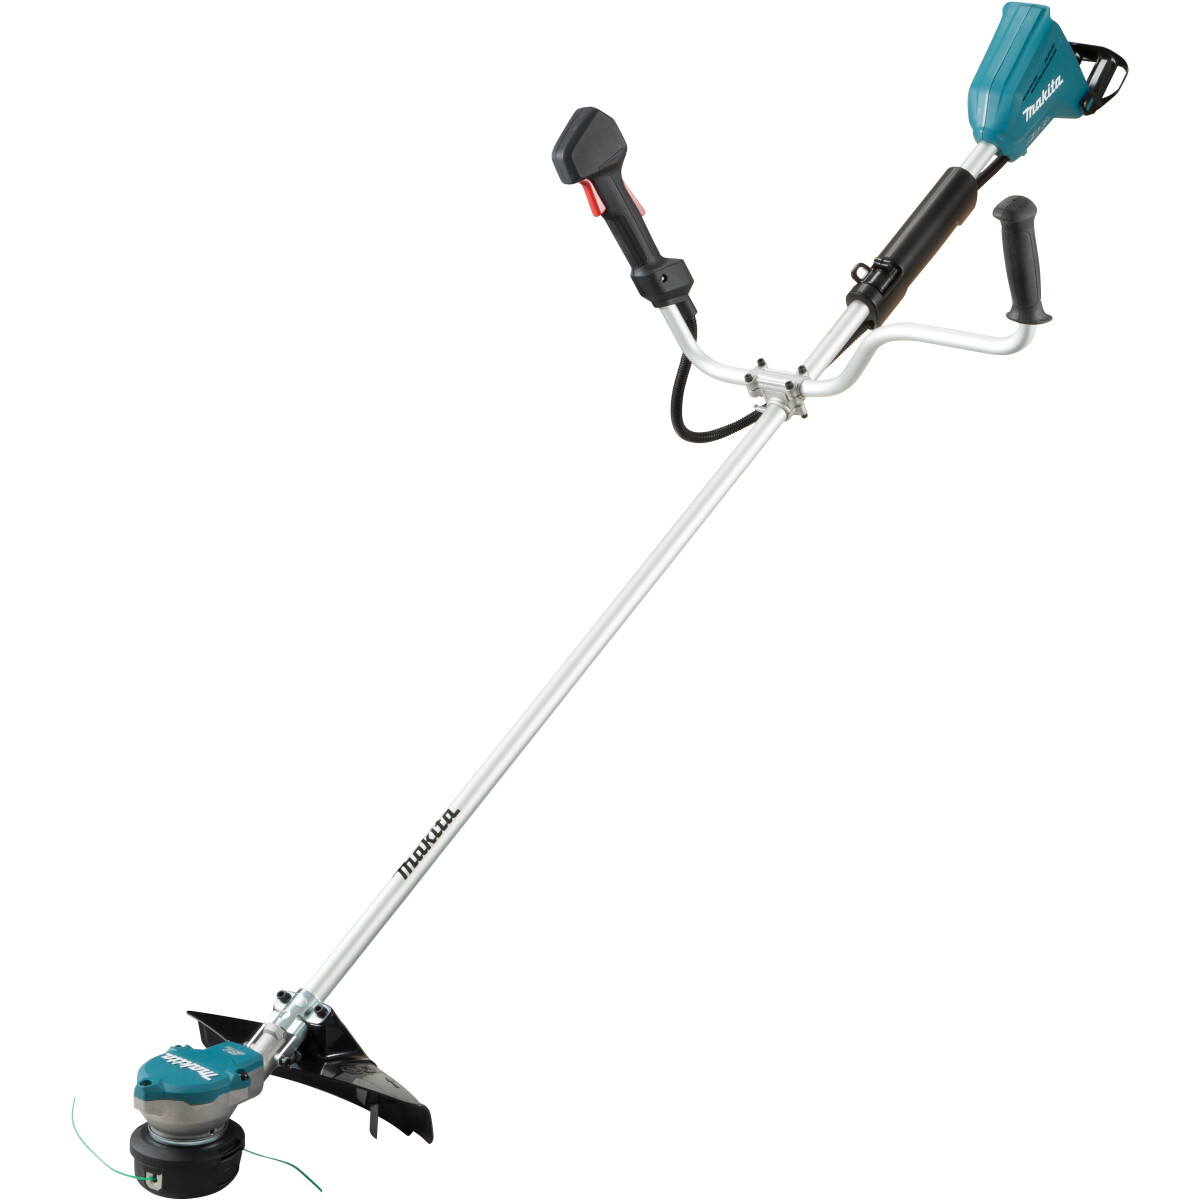 Makita DUR368AZ Body Only Twin 18v Brushless Brush Cutter